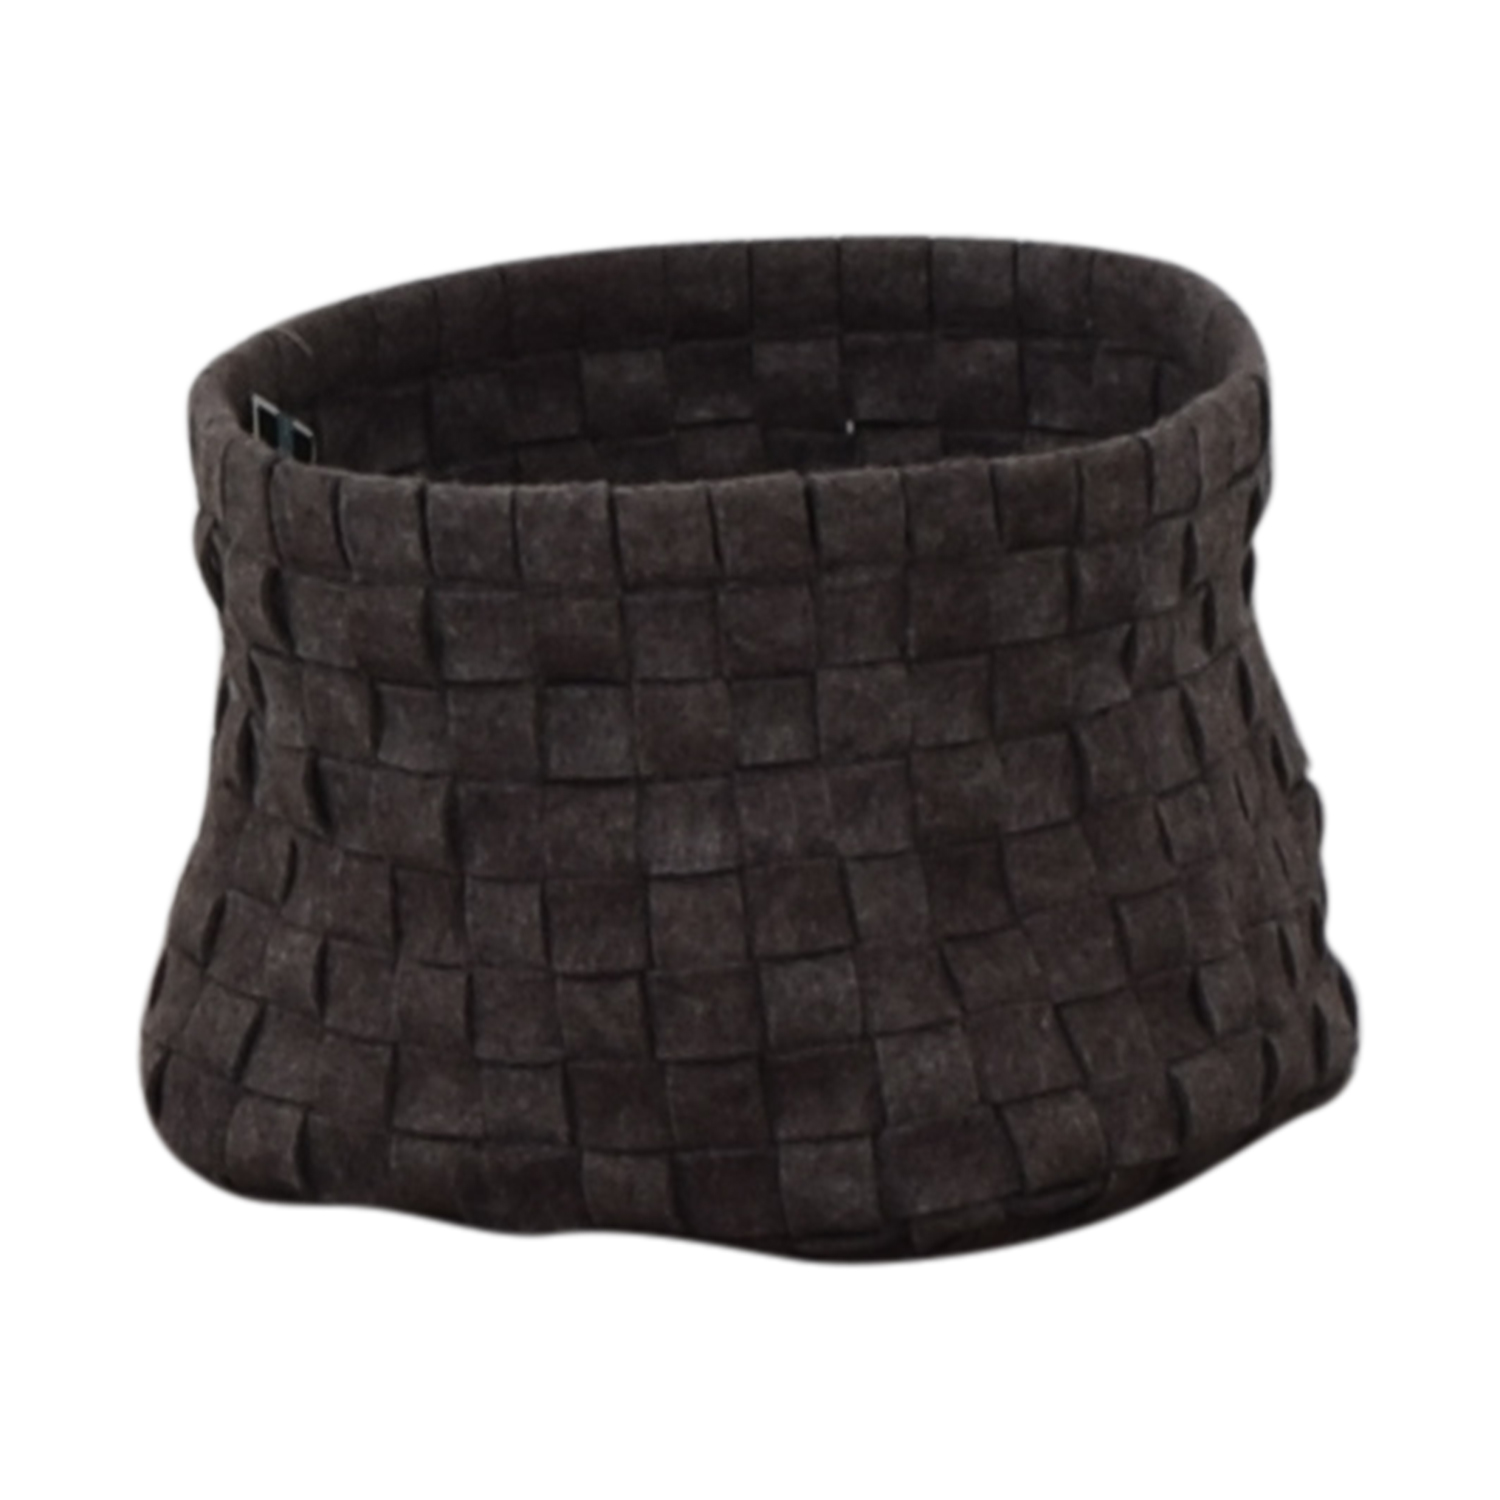 Target Grey Knitted Basket / Decorative Accents